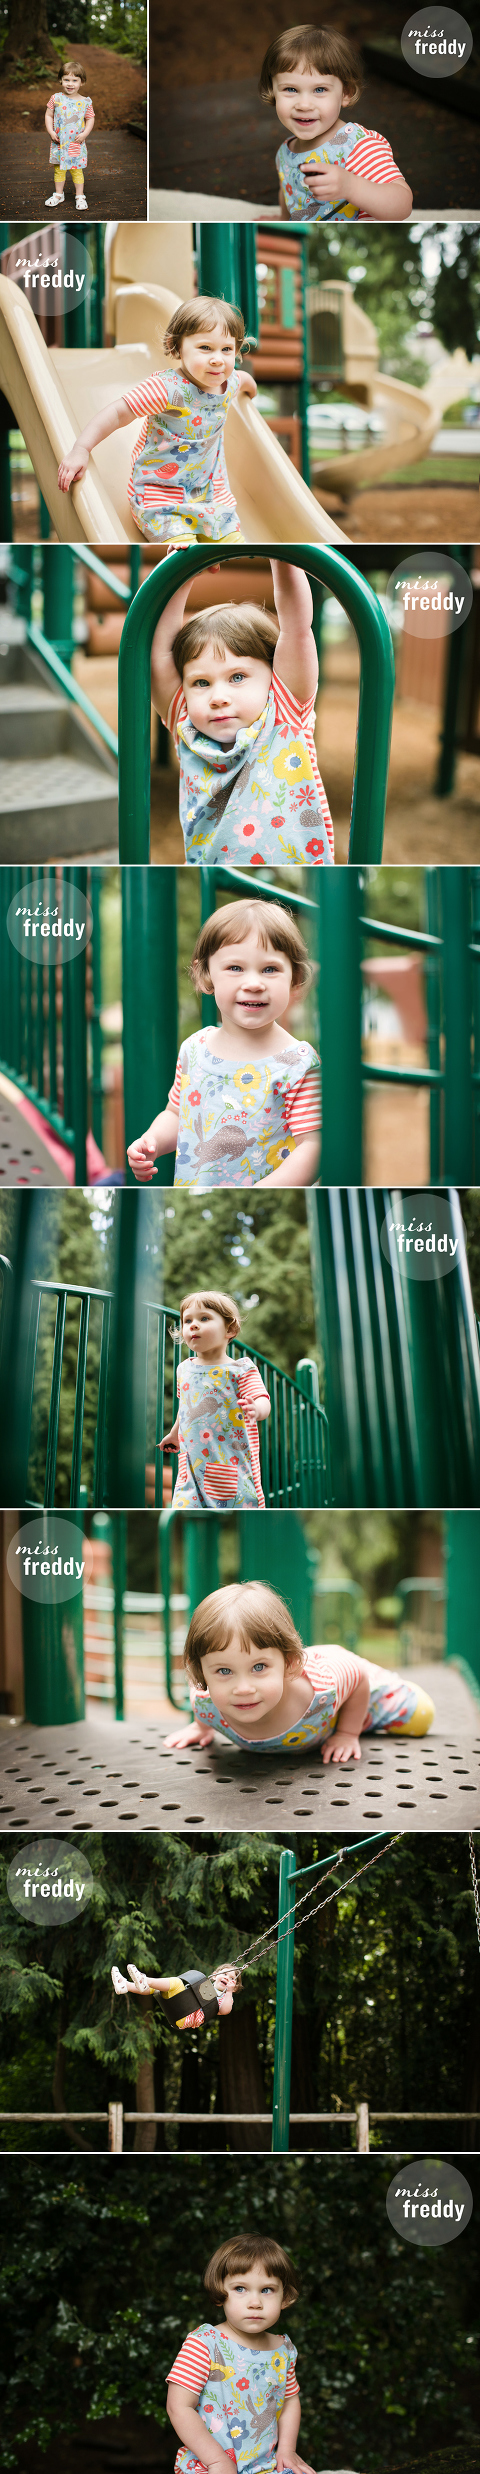 Fun photo session at a playground, by Miss Freddy, Denver kids photographer.